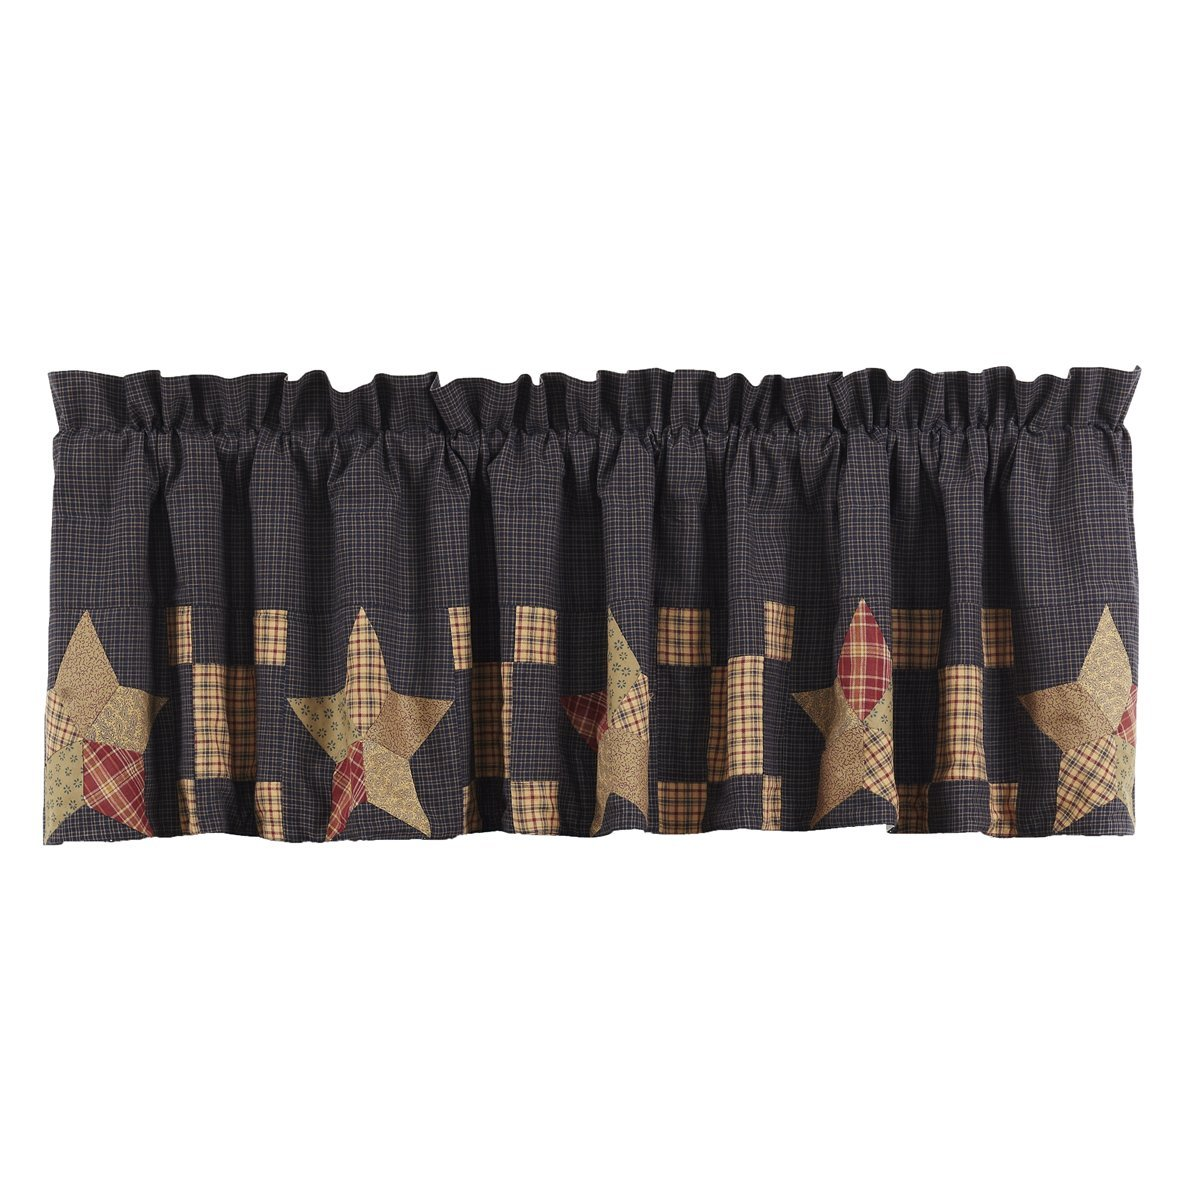 VHC Brands Americana Classic Country Kitchen Window Curtains-Arlington Tan Block Border Valance